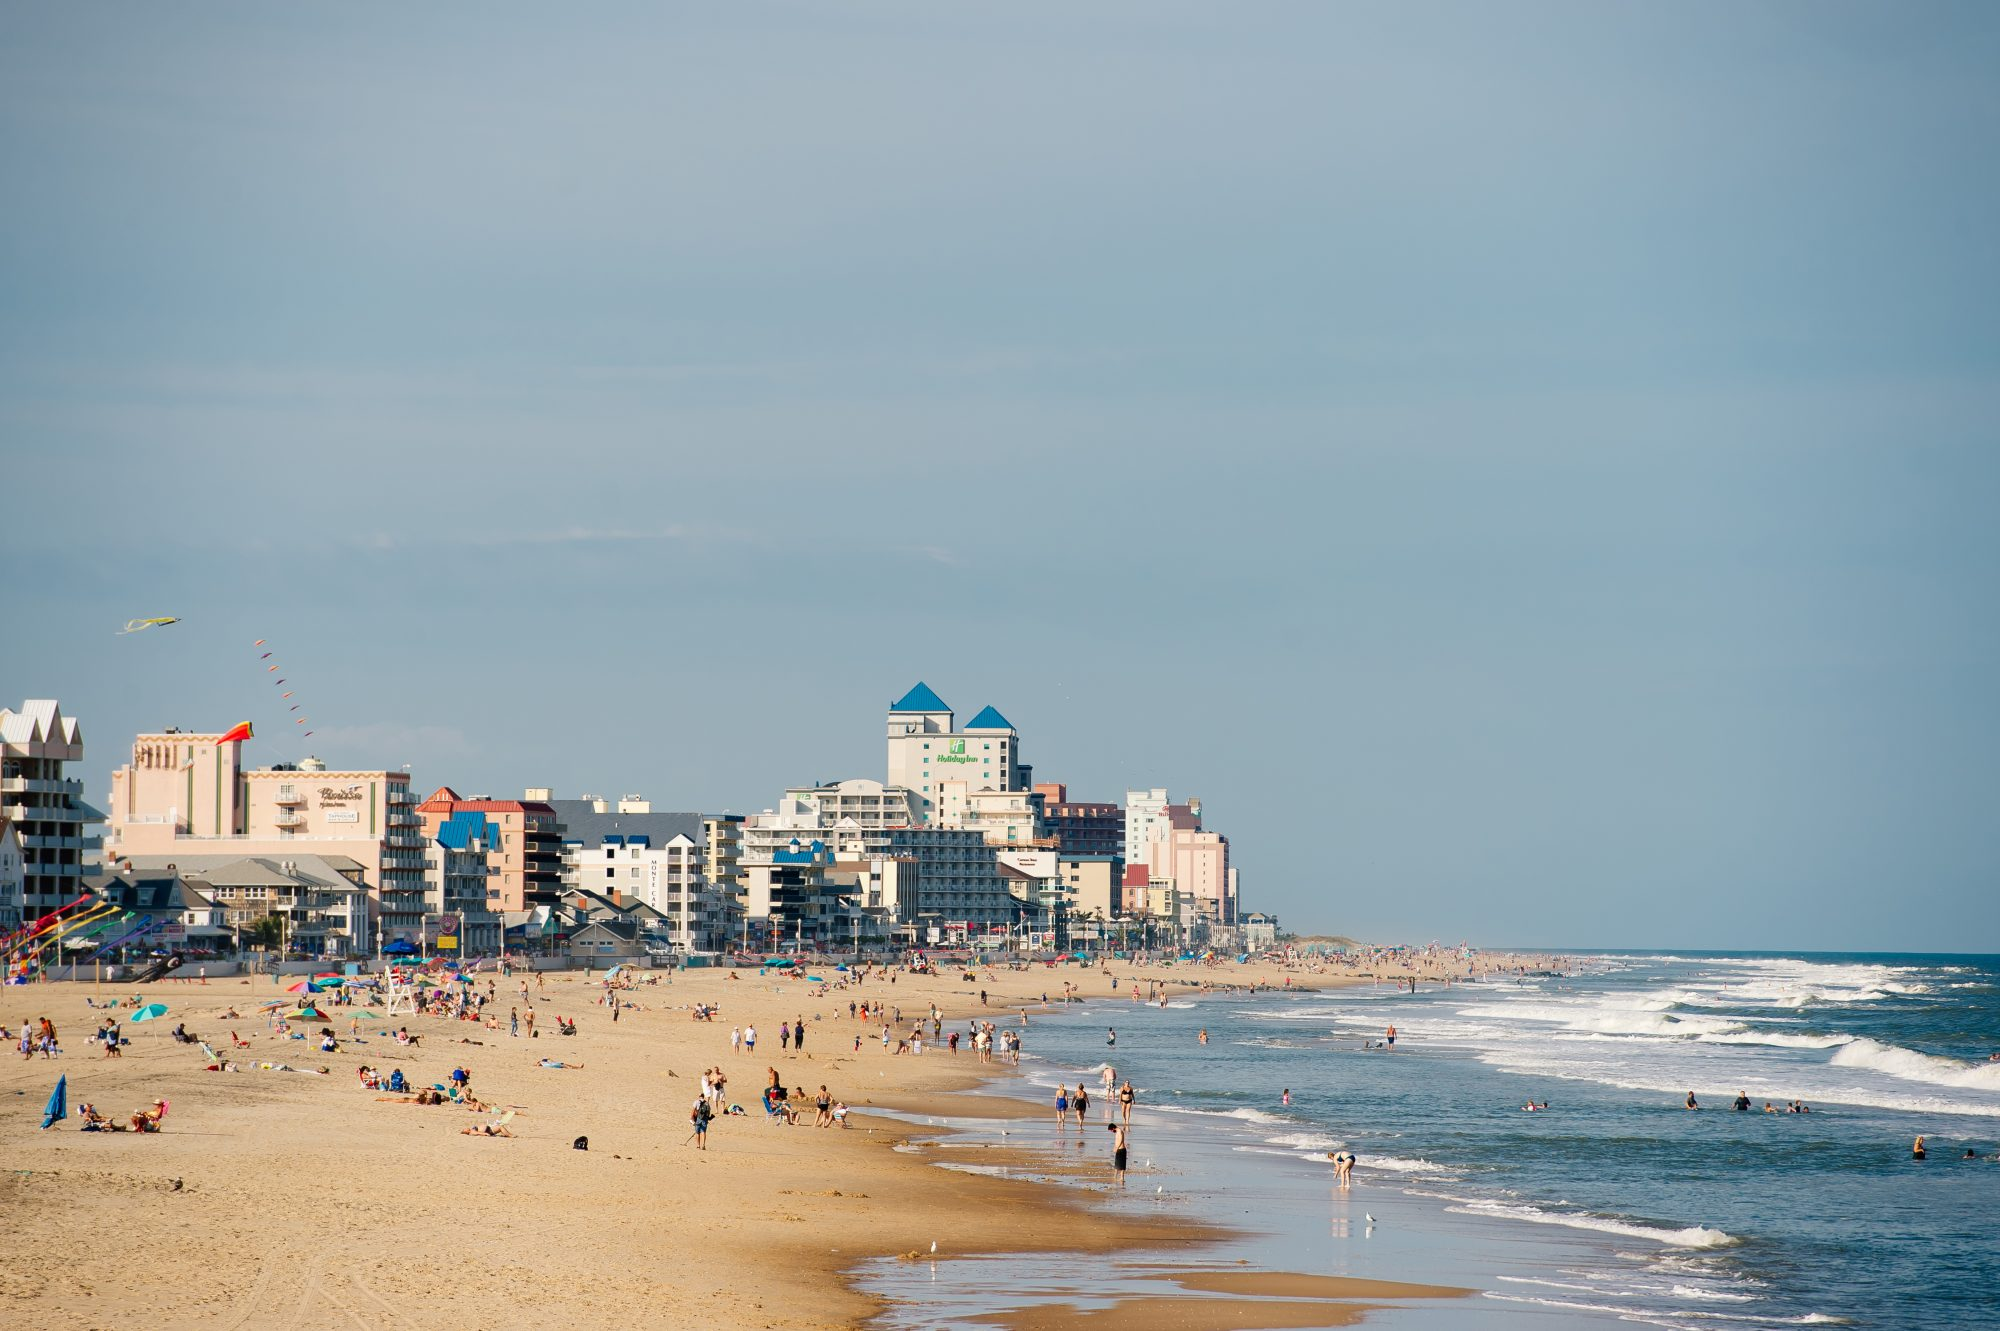 7. Ocean City, Maryland